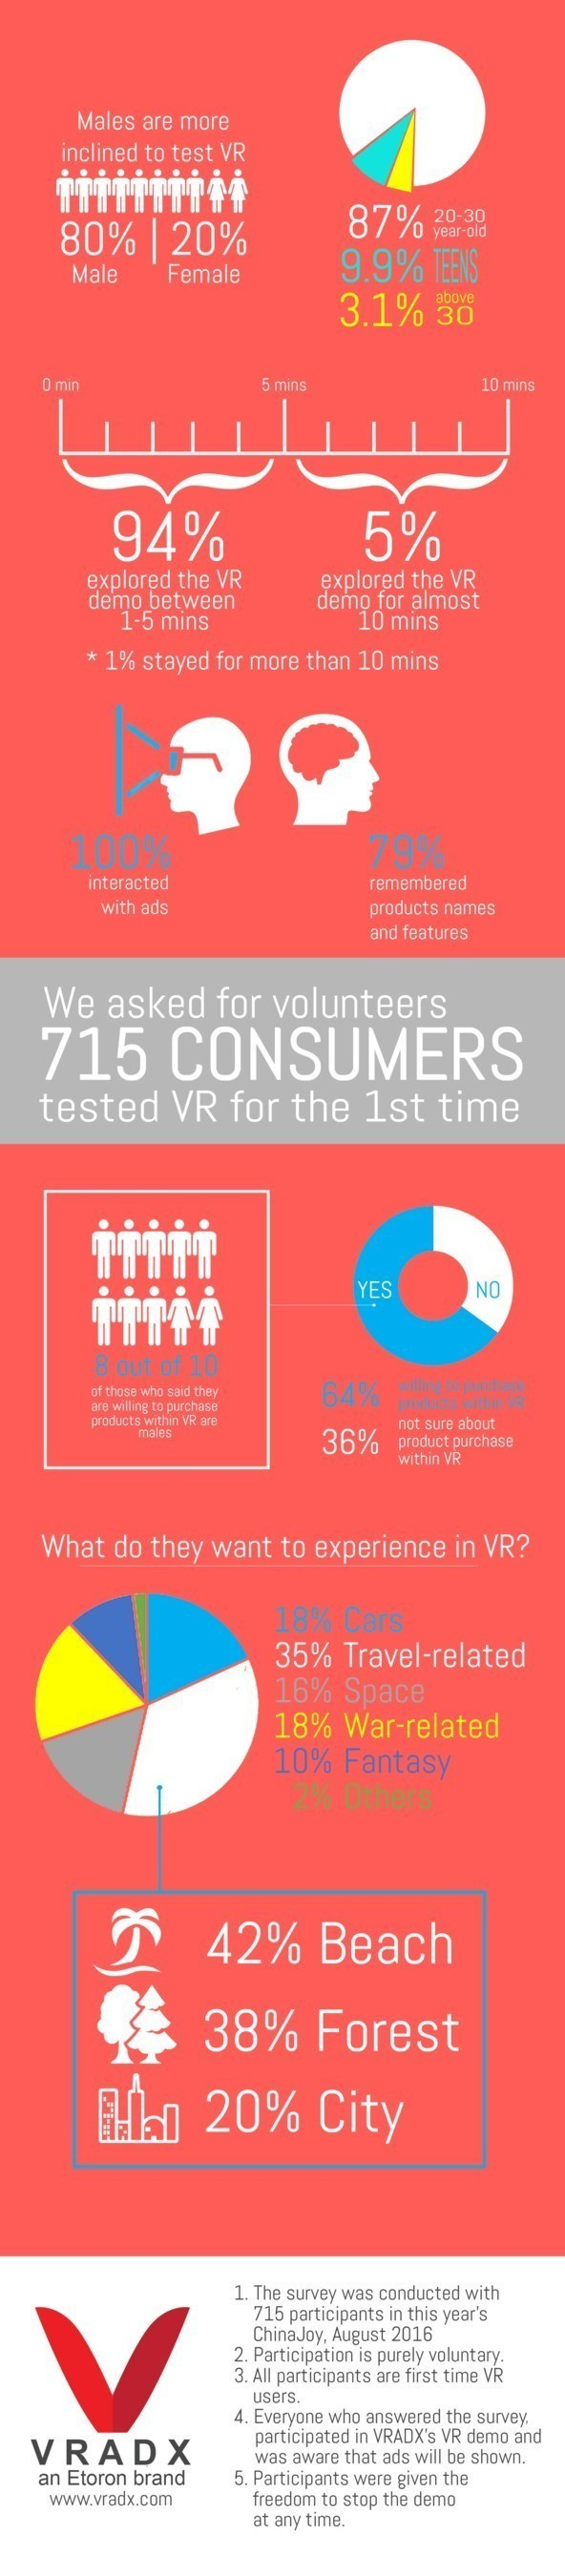 VRADX's Study Reveals Tourism and Car Industries will Benefit from VR Advertising the Most